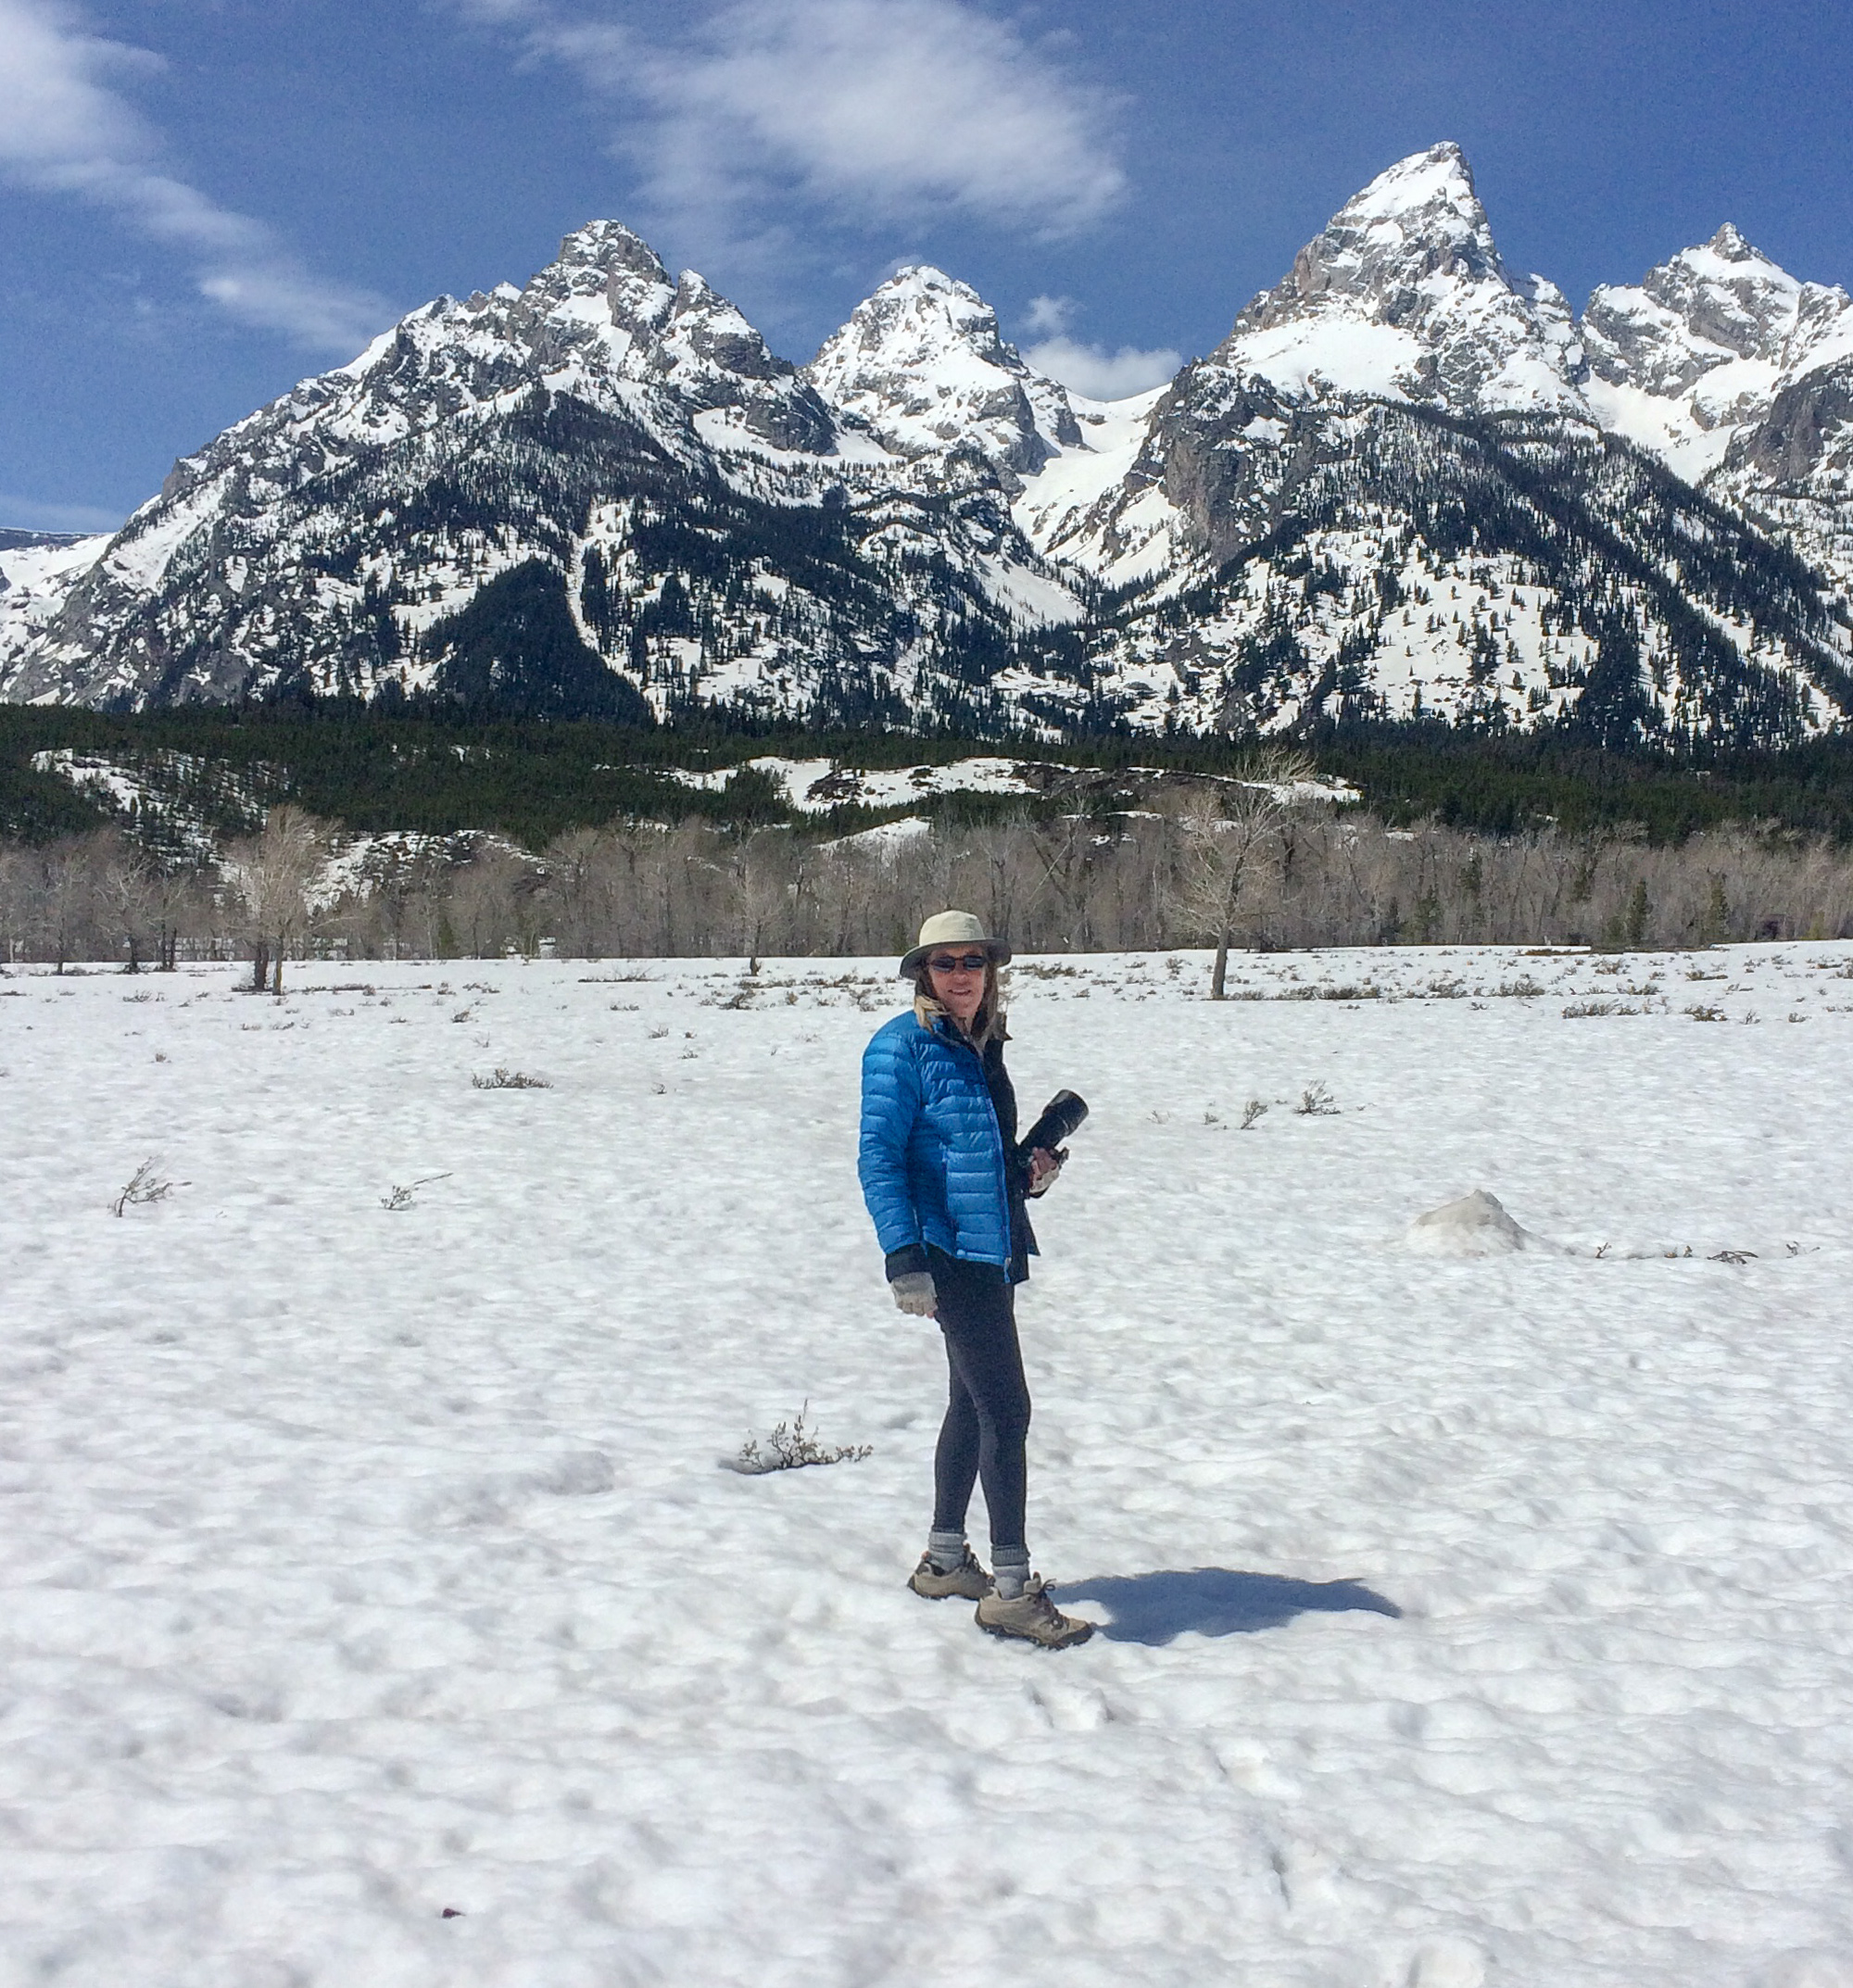 Walking the road at Grand Teton National Park.